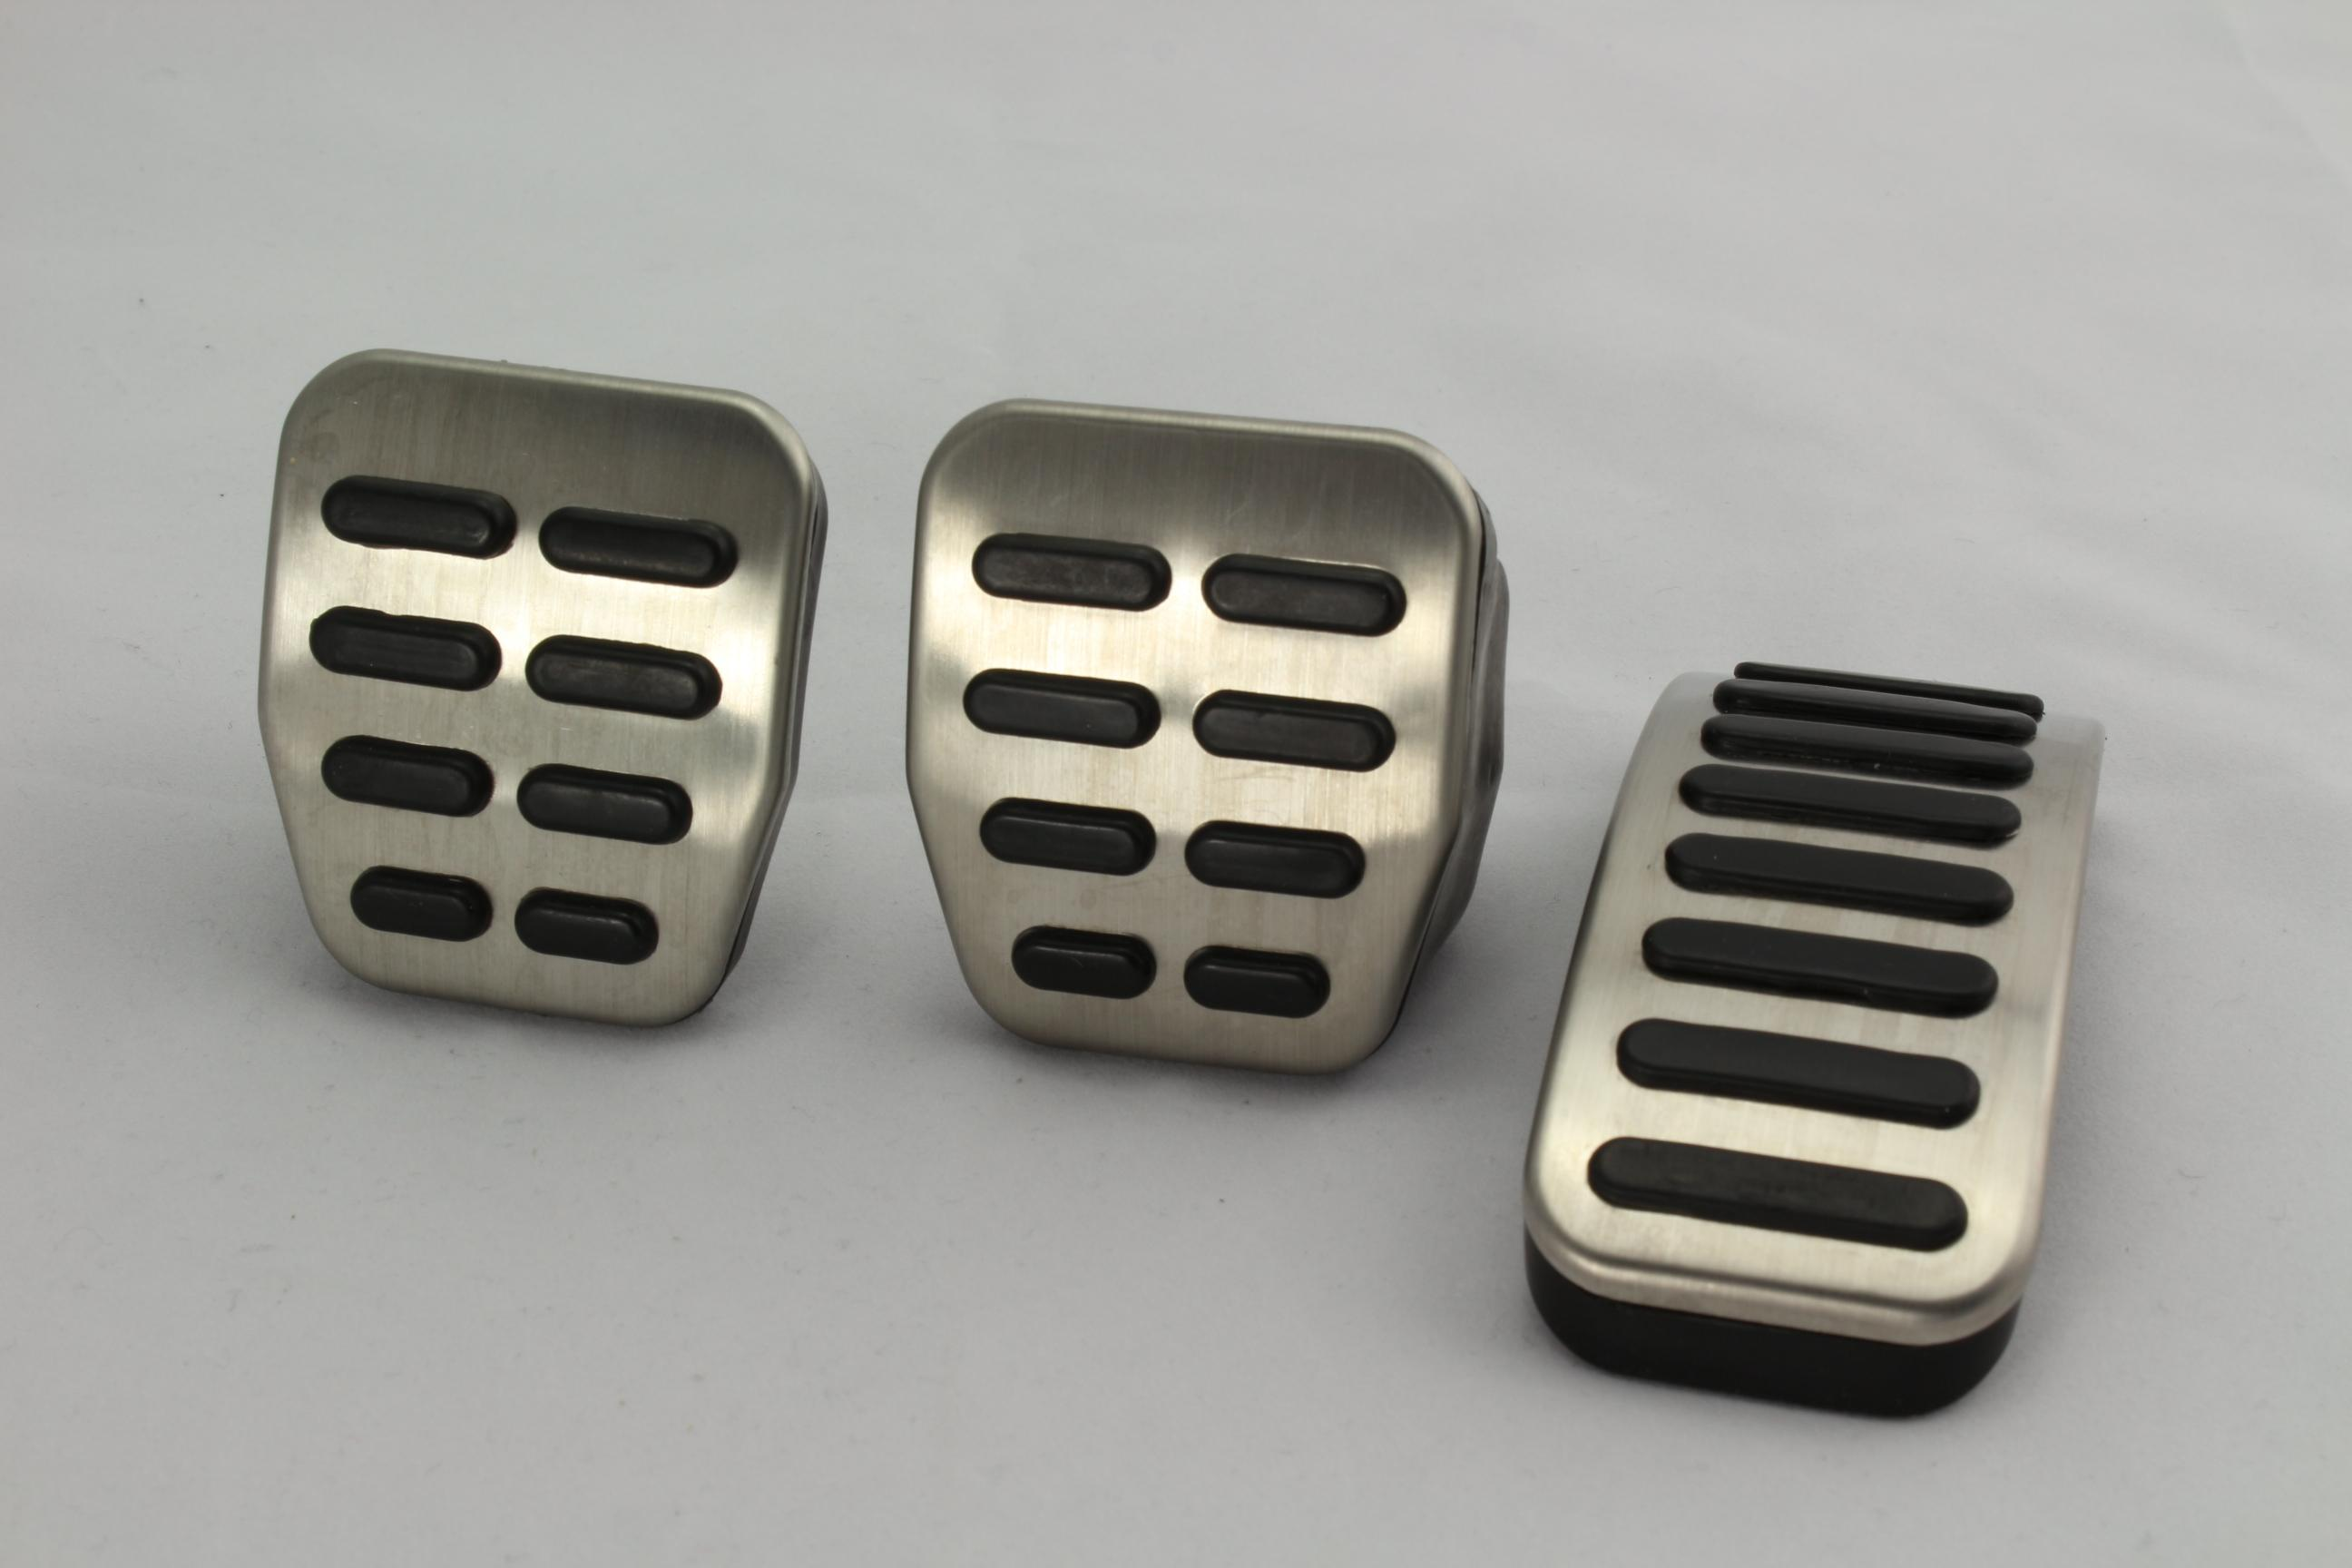 Stainless Steel Car Pedals For Audi TT Pedal VW SEAT SKODA Golf 3 4 Polo  9N3 Octavia Ibiza Fabia A1 A2 A3 GTI Audi Vw Pedal Online with $27.22/Piece  on ...